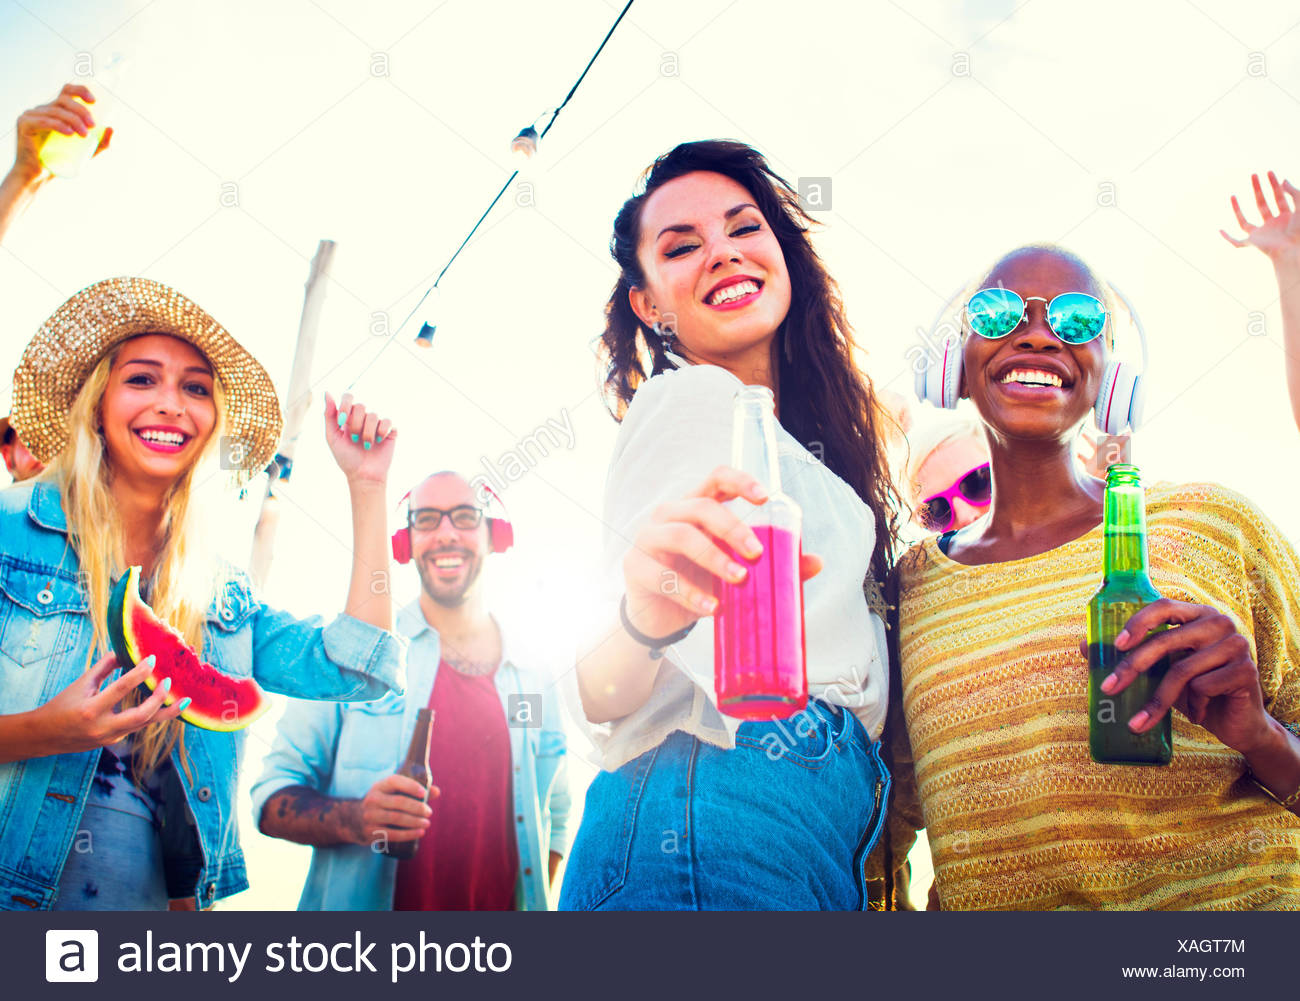 Friendship Celebration Party Beach Summer Concept - Stock Image